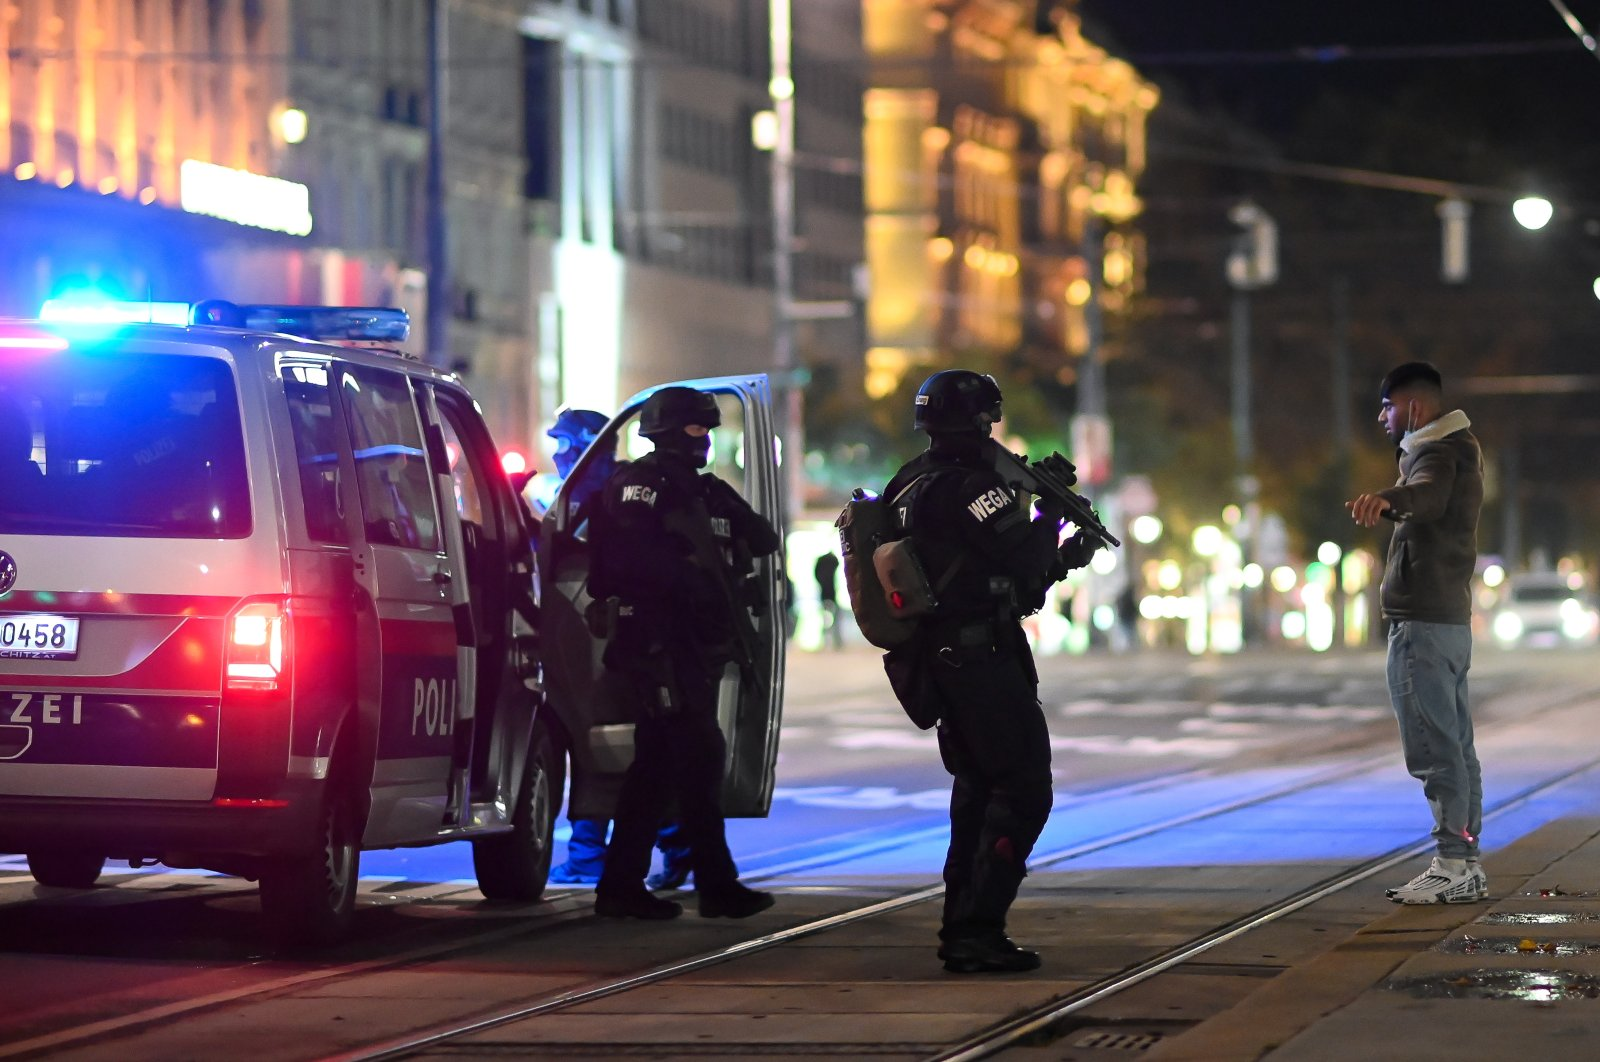 Austrian police special forces search a civilian infront of The Wiener Staatsoper (Vienna State Opera) after a shooting near the Stadttempel' synagogue in Vienna, Austria, 02 November 2020. (EPA Photo)